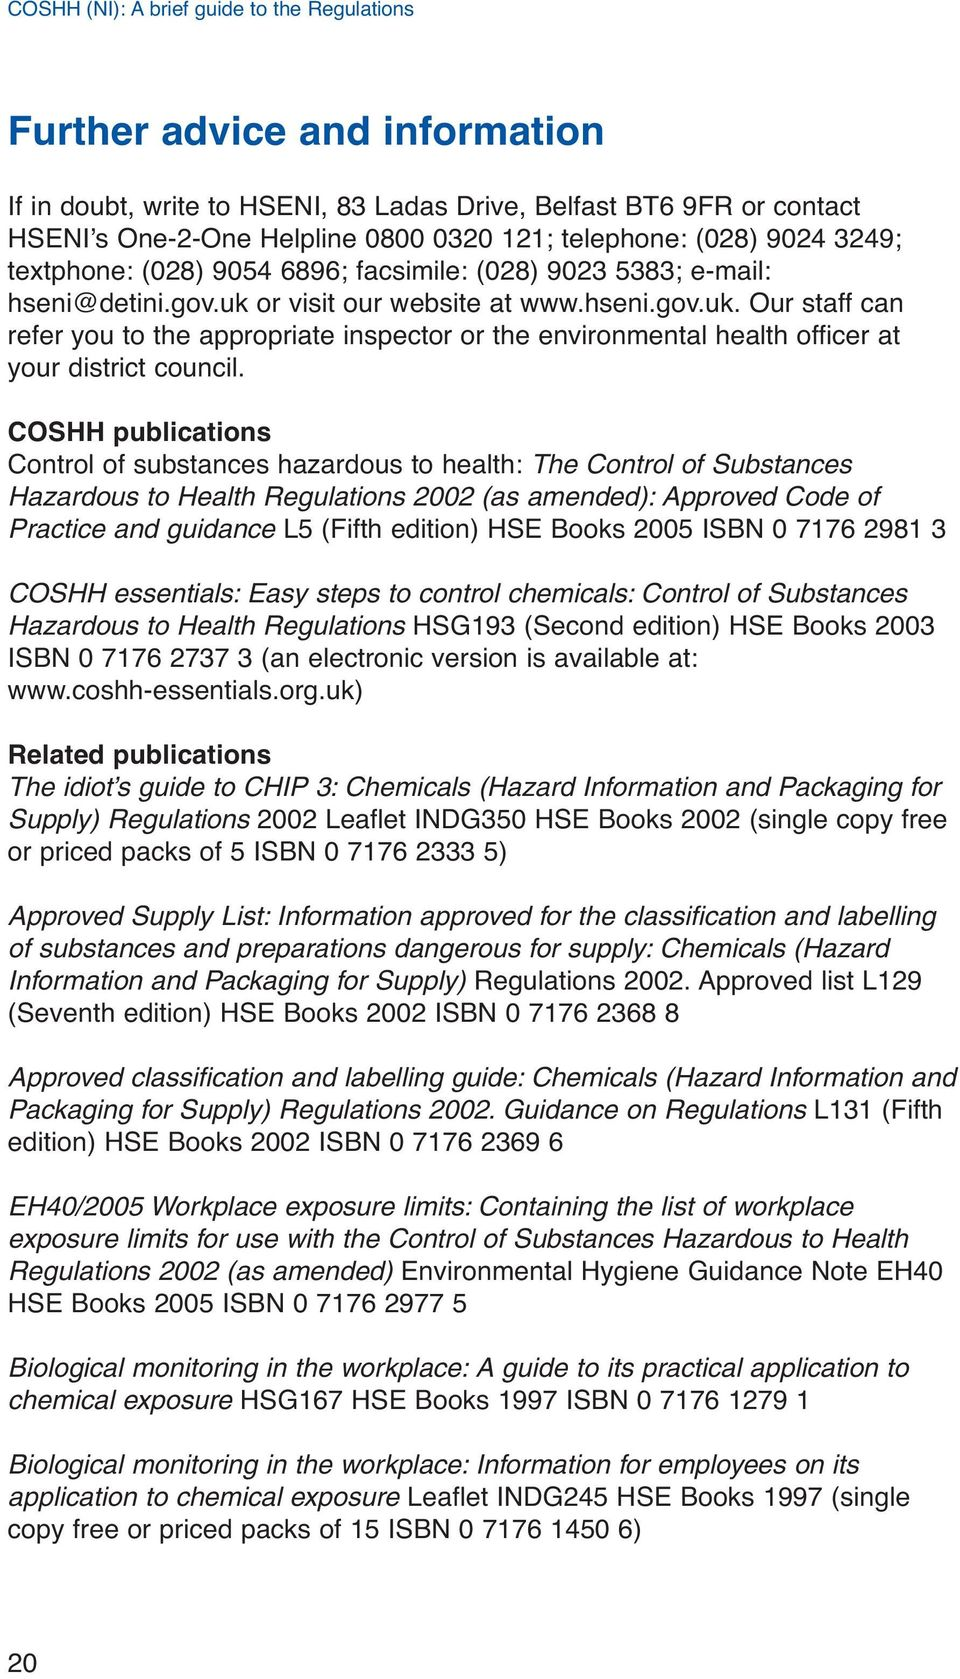 COSHH publications Control of substances hazardous to health: The Control of Substances Hazardous to Health Regulations 2002 (as amended): Approved Code of Practice and guidance L5 (Fifth edition)